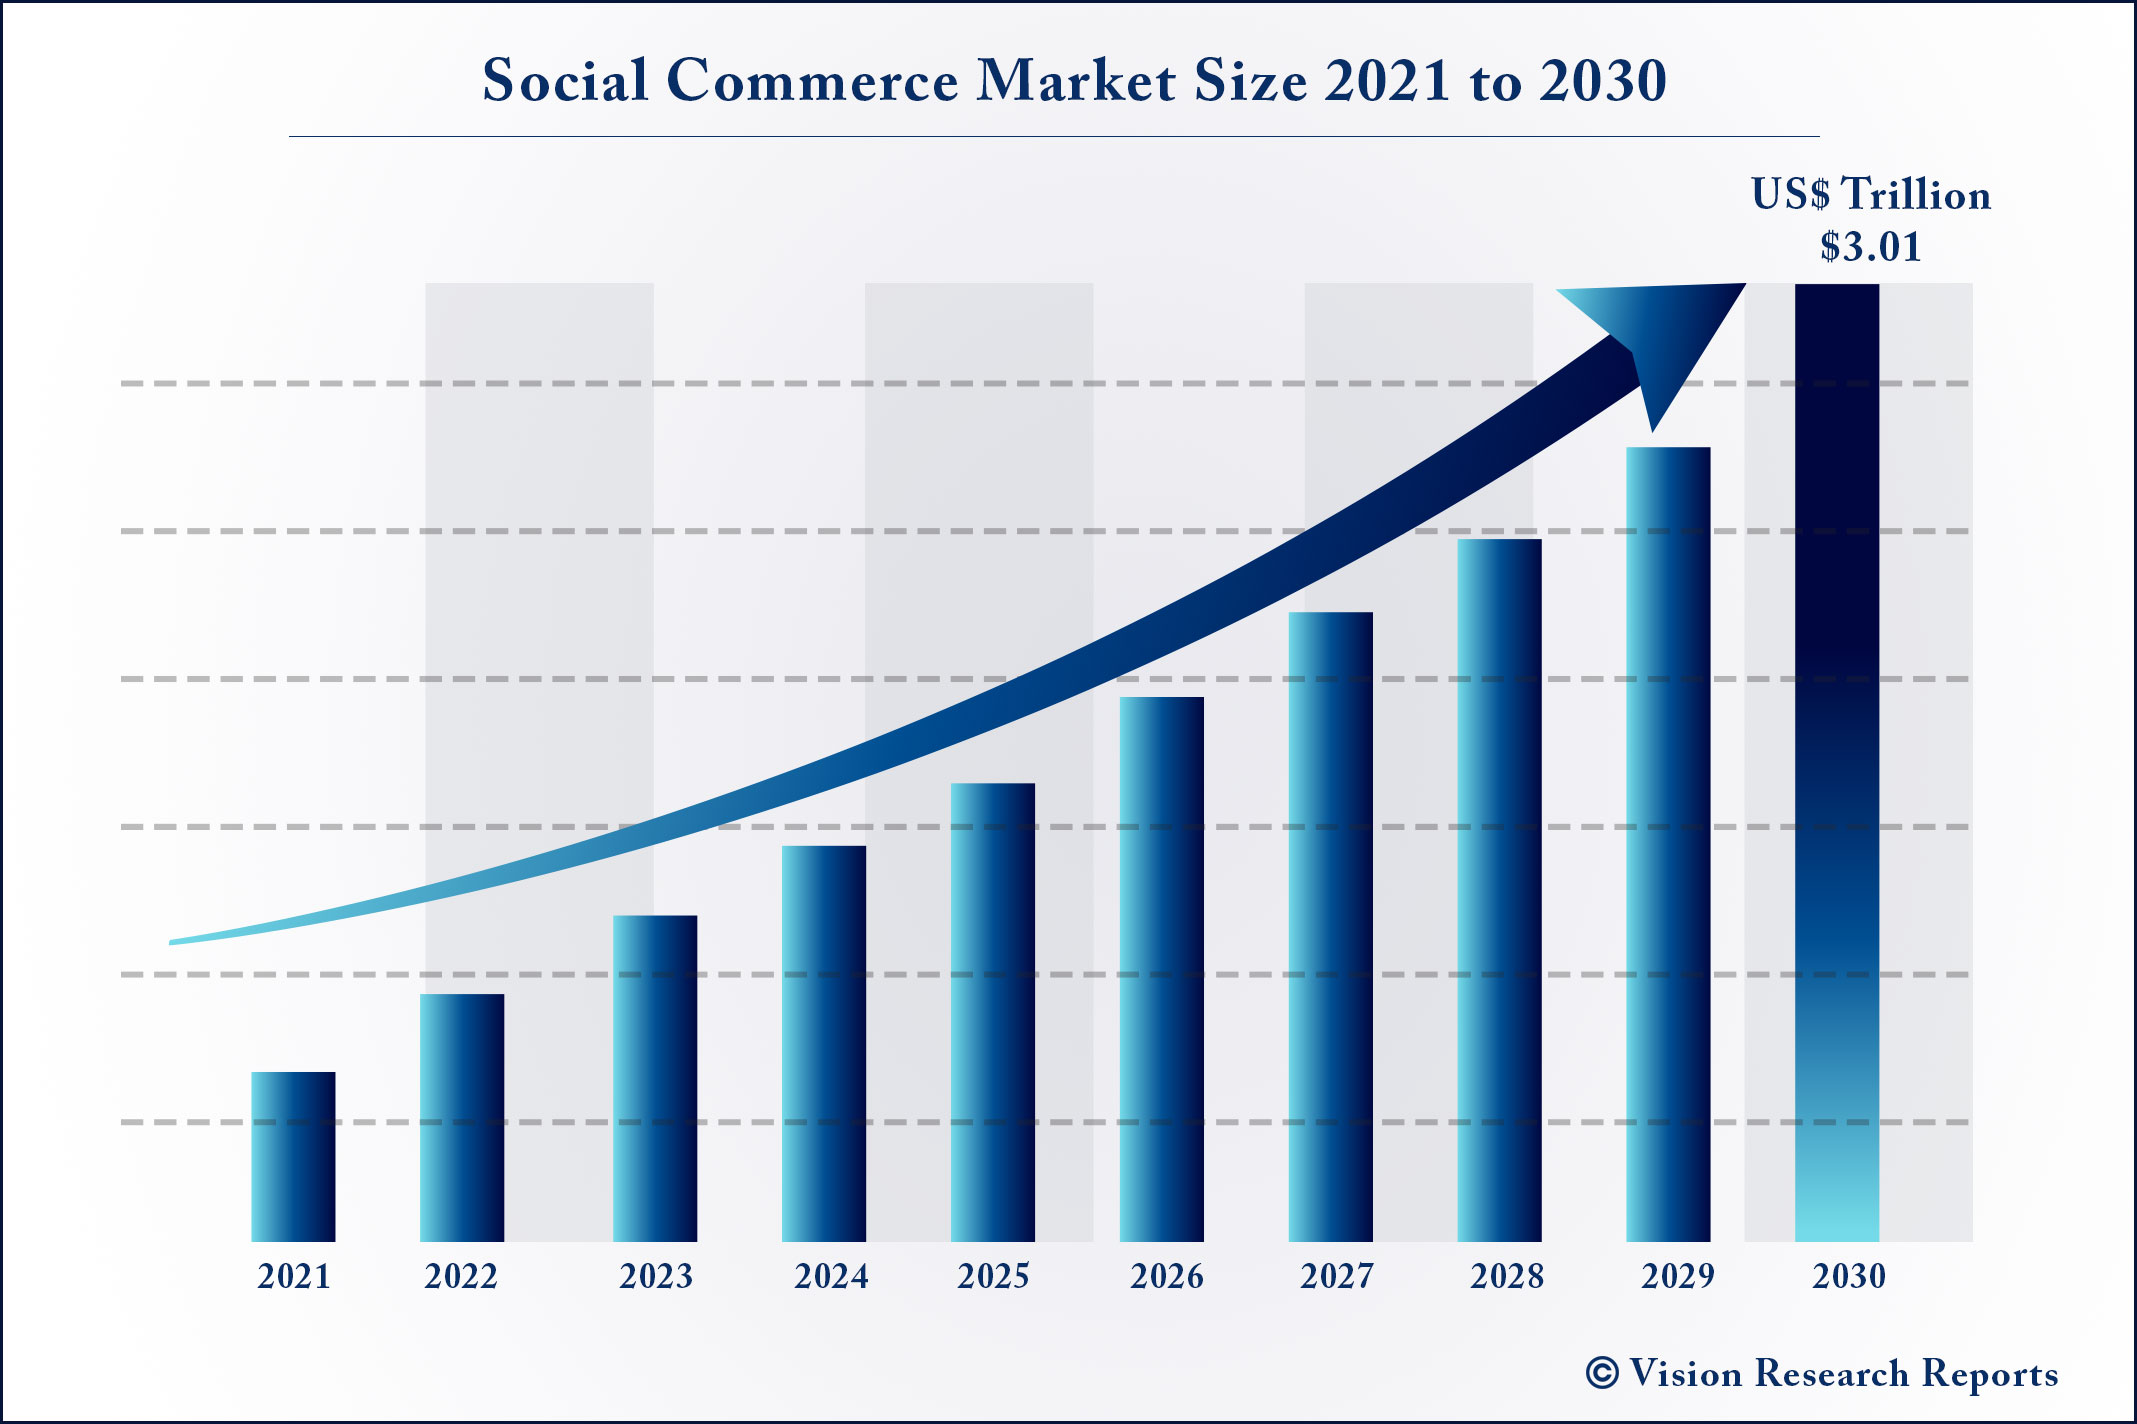 Social Commerce Market Size 2021 to 2030